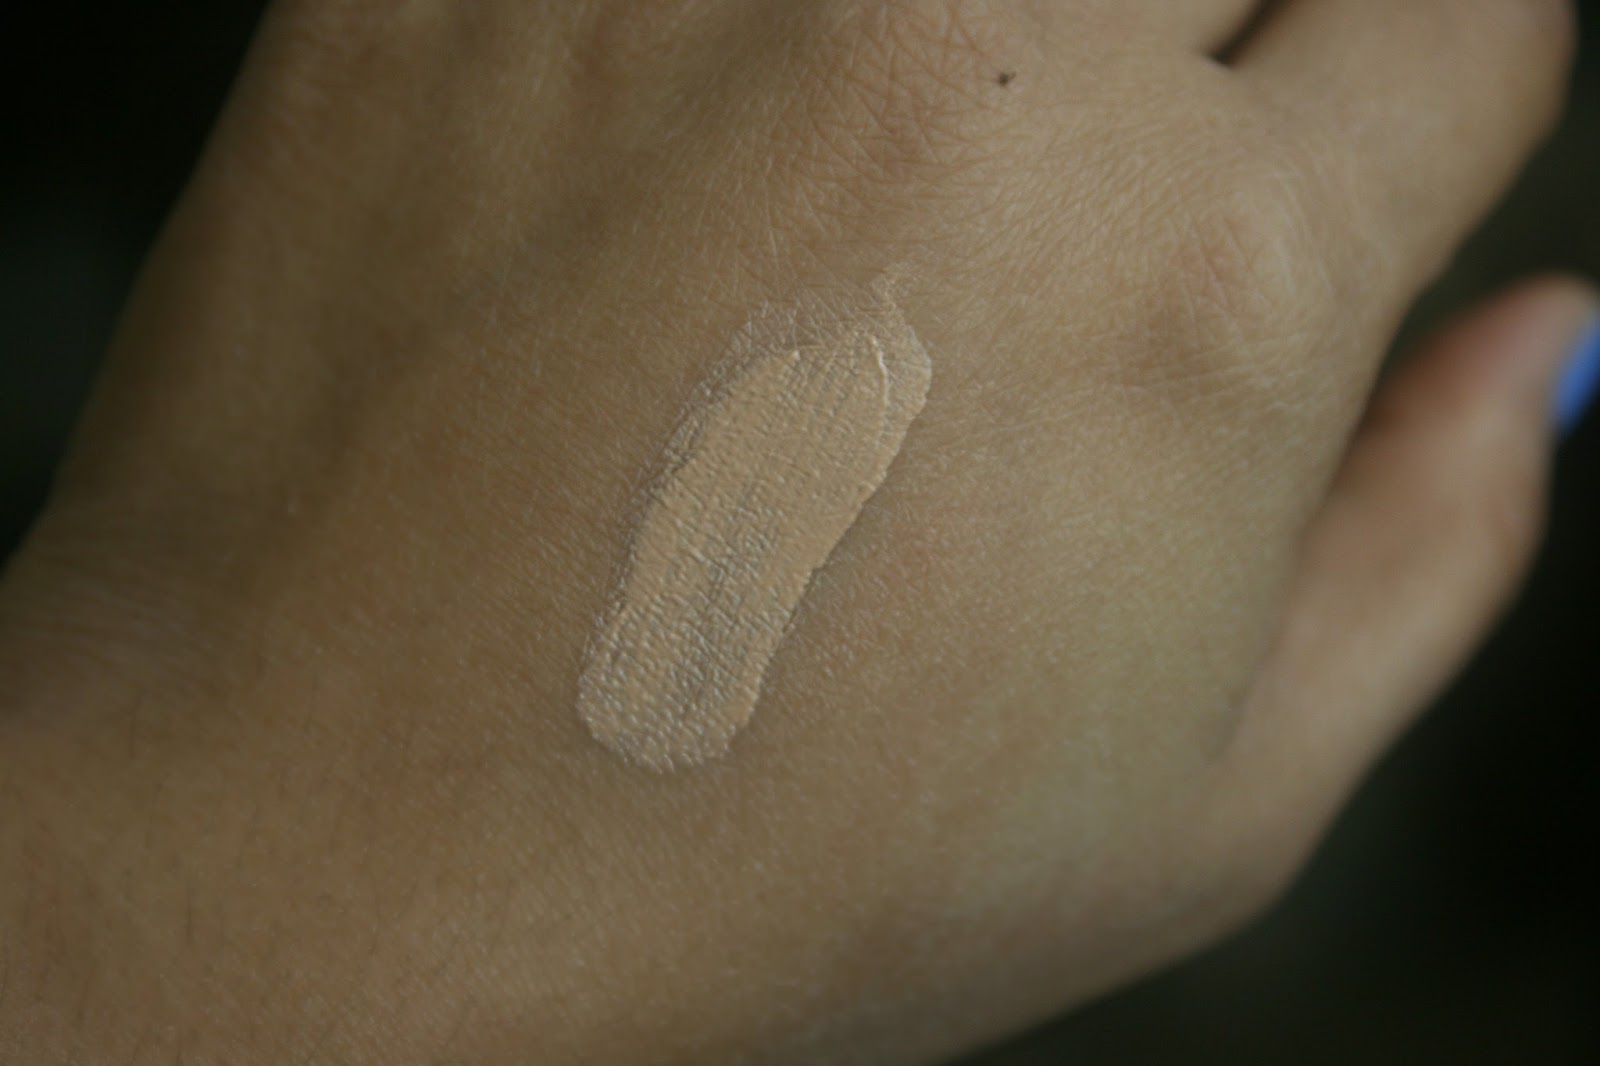 bareMinerals Smoothing Face Brush and Complexion Rescue in Ginger Swatch